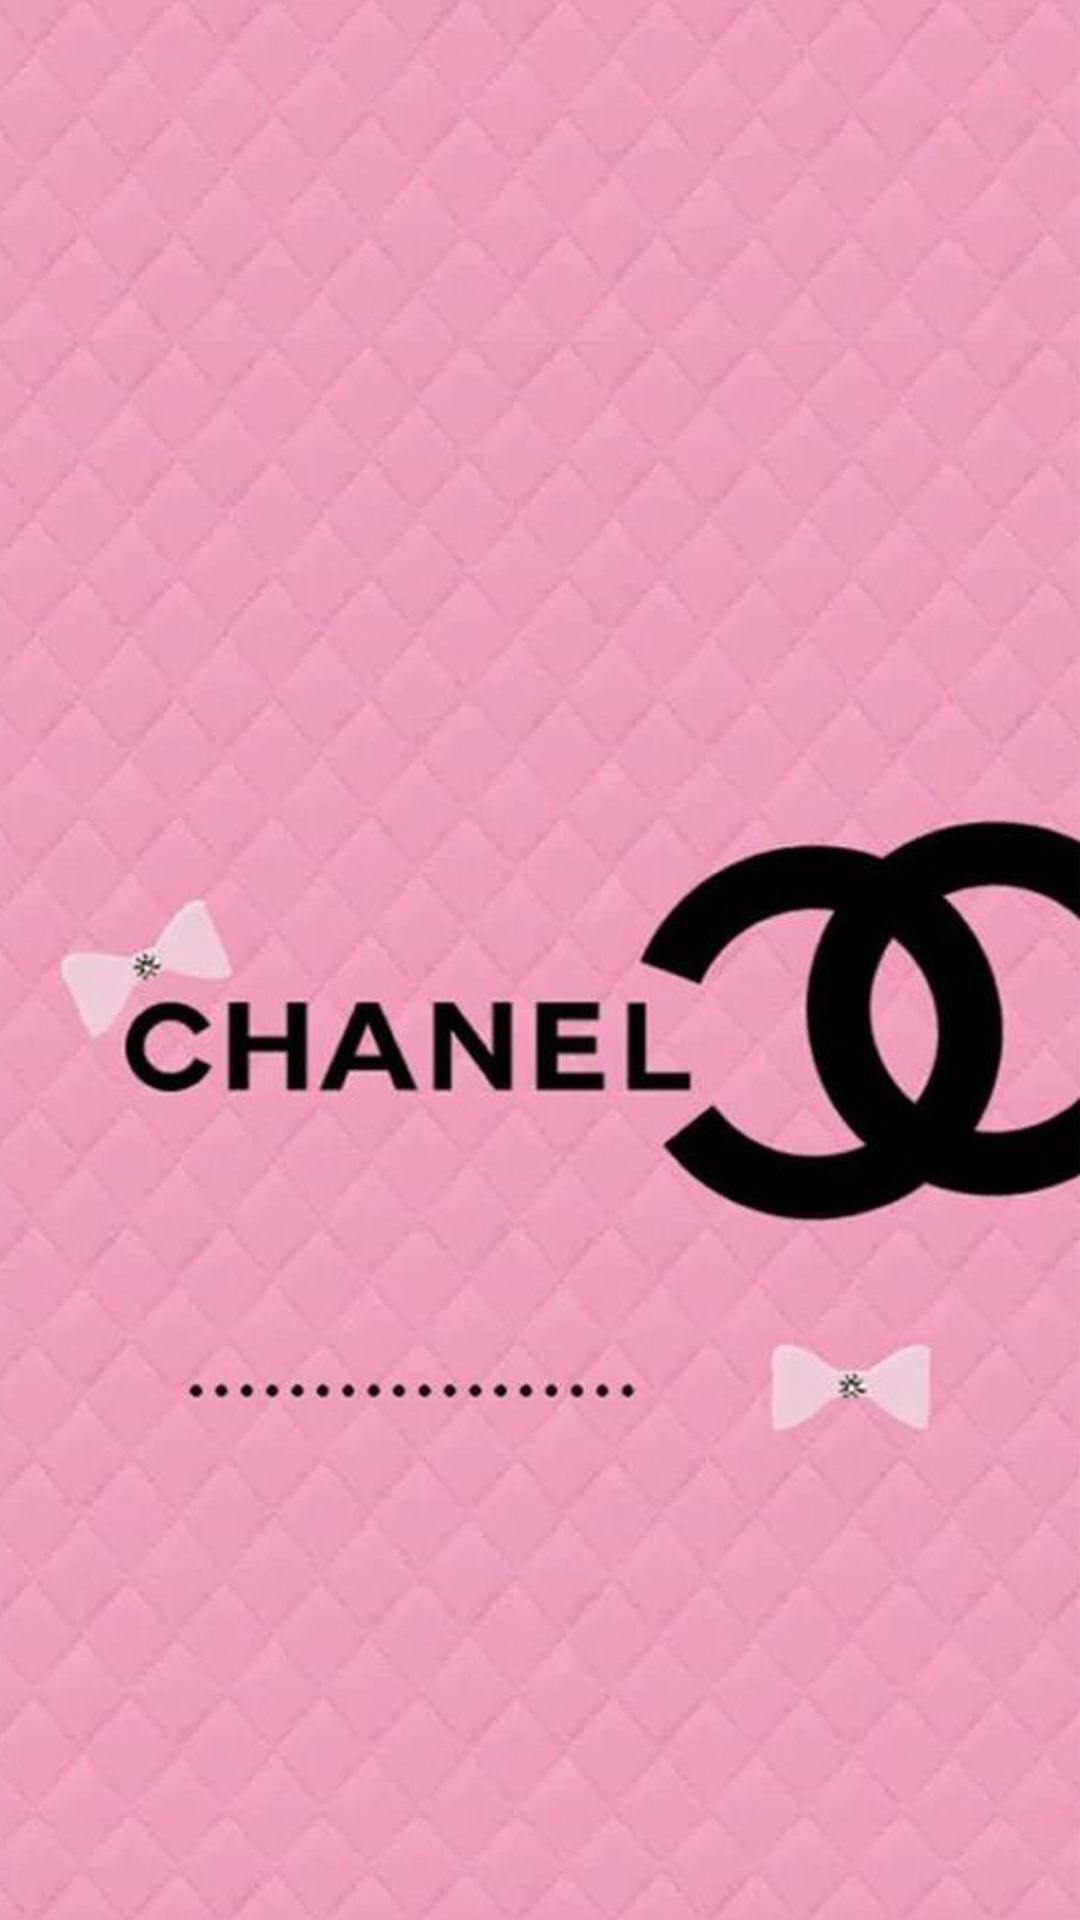 Chanel iPhone Backgrounds 1080x1920